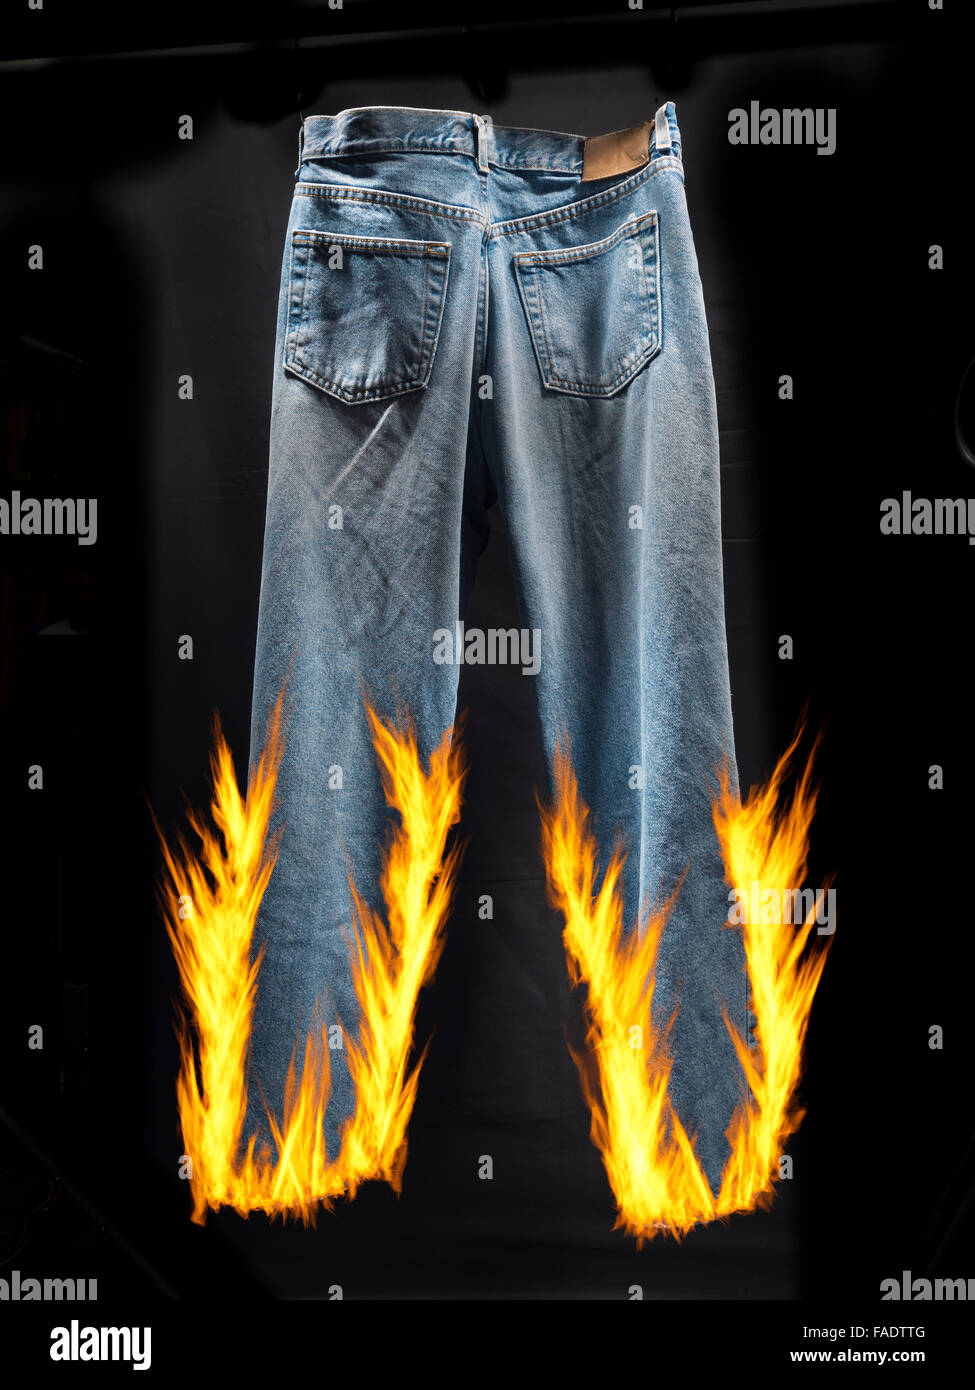 Blue jeans set on fire for idiom,liar,liar,pants on fire - Stock Image